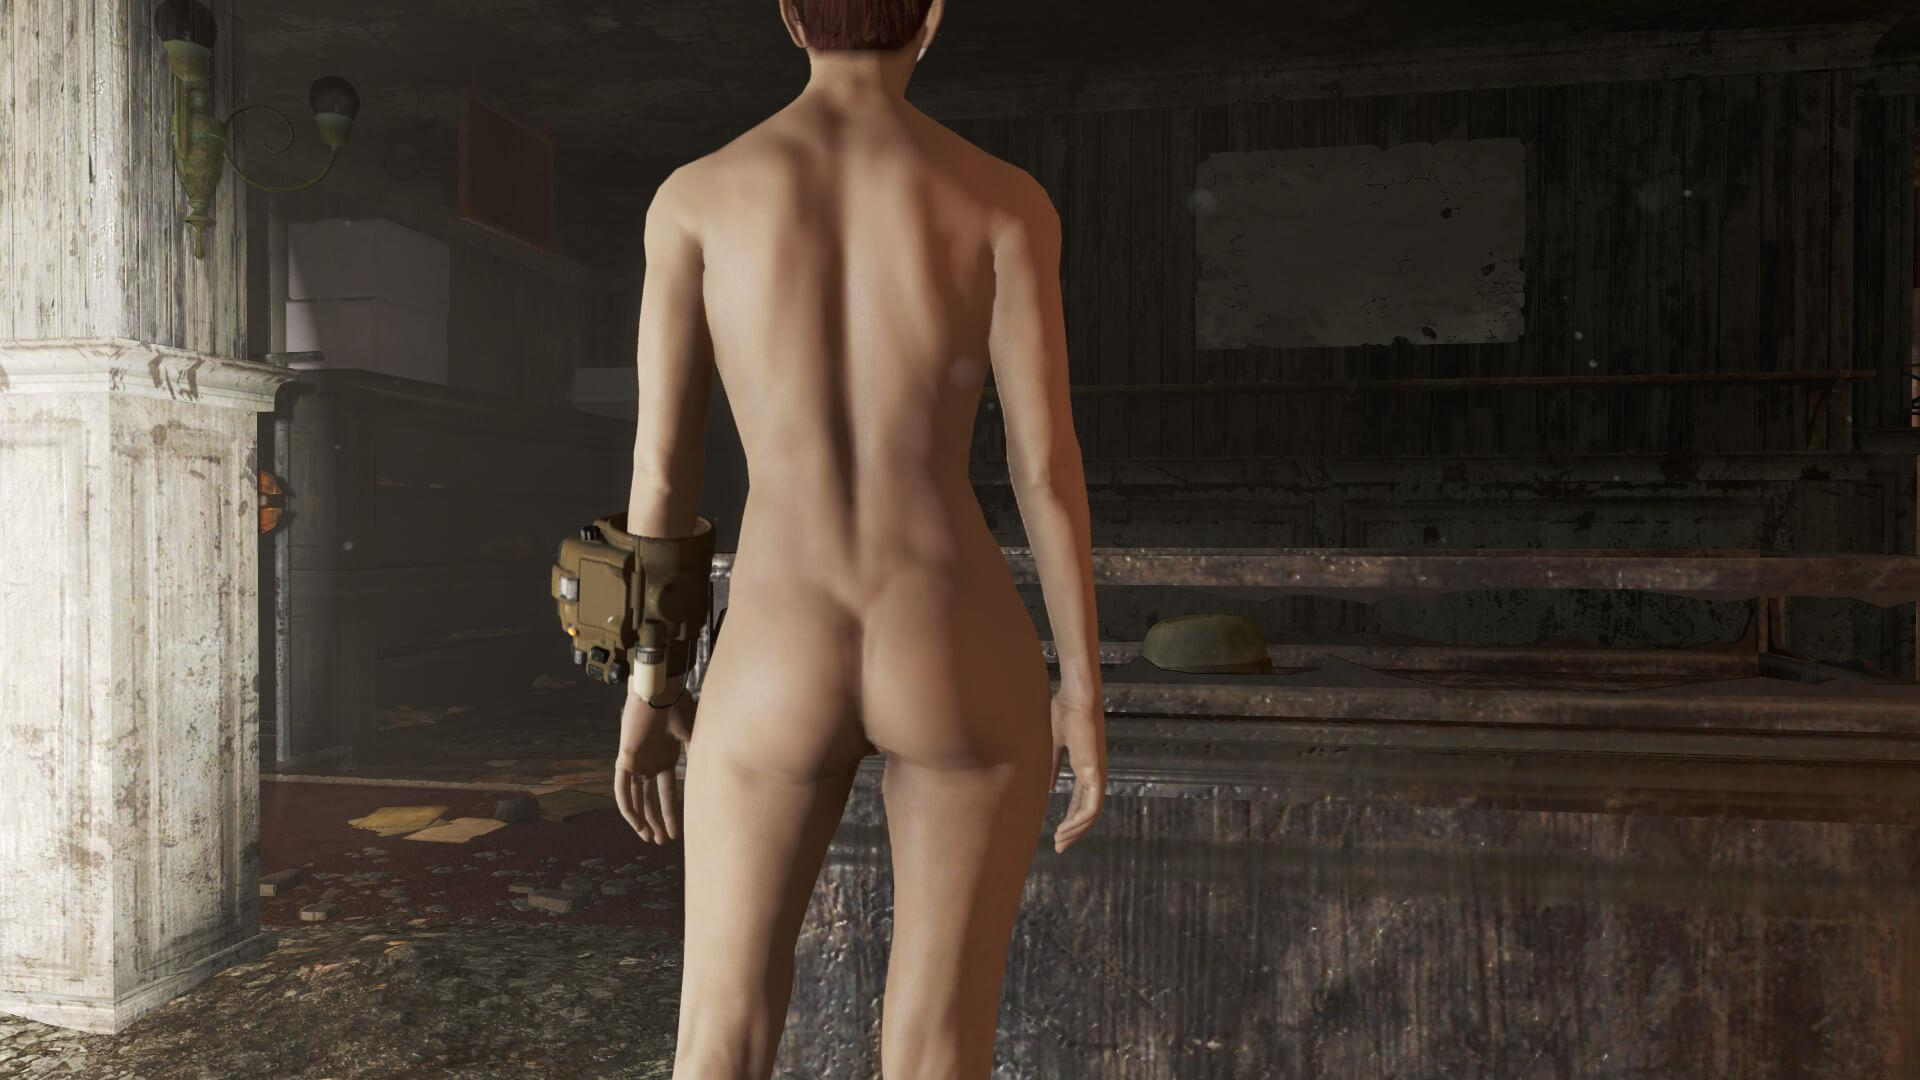 Right! Pc game nude patches necessary